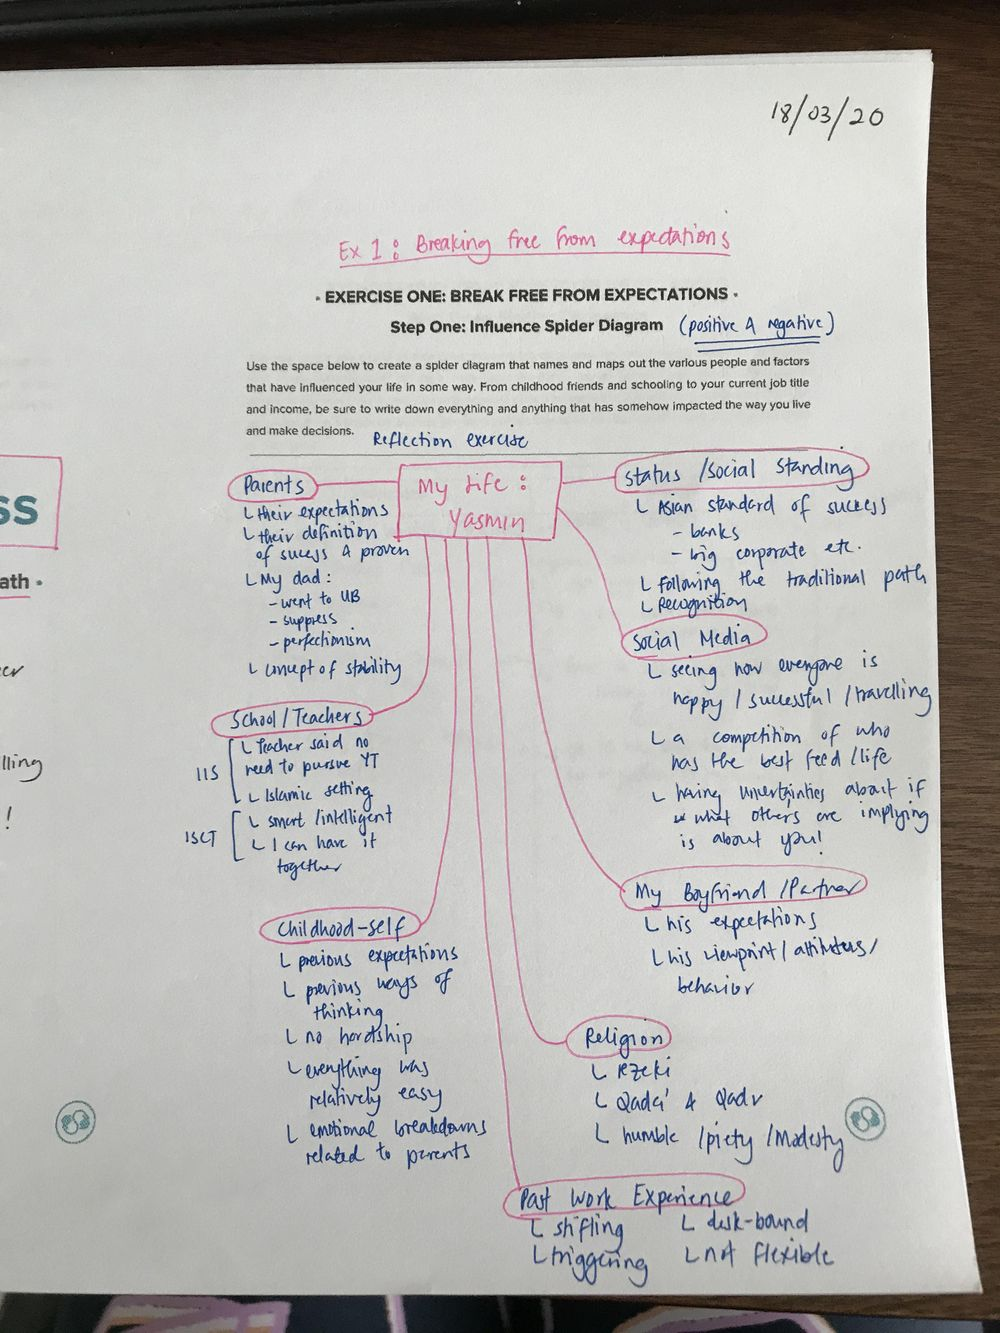 Worksheet Reflection - image 1 - student project